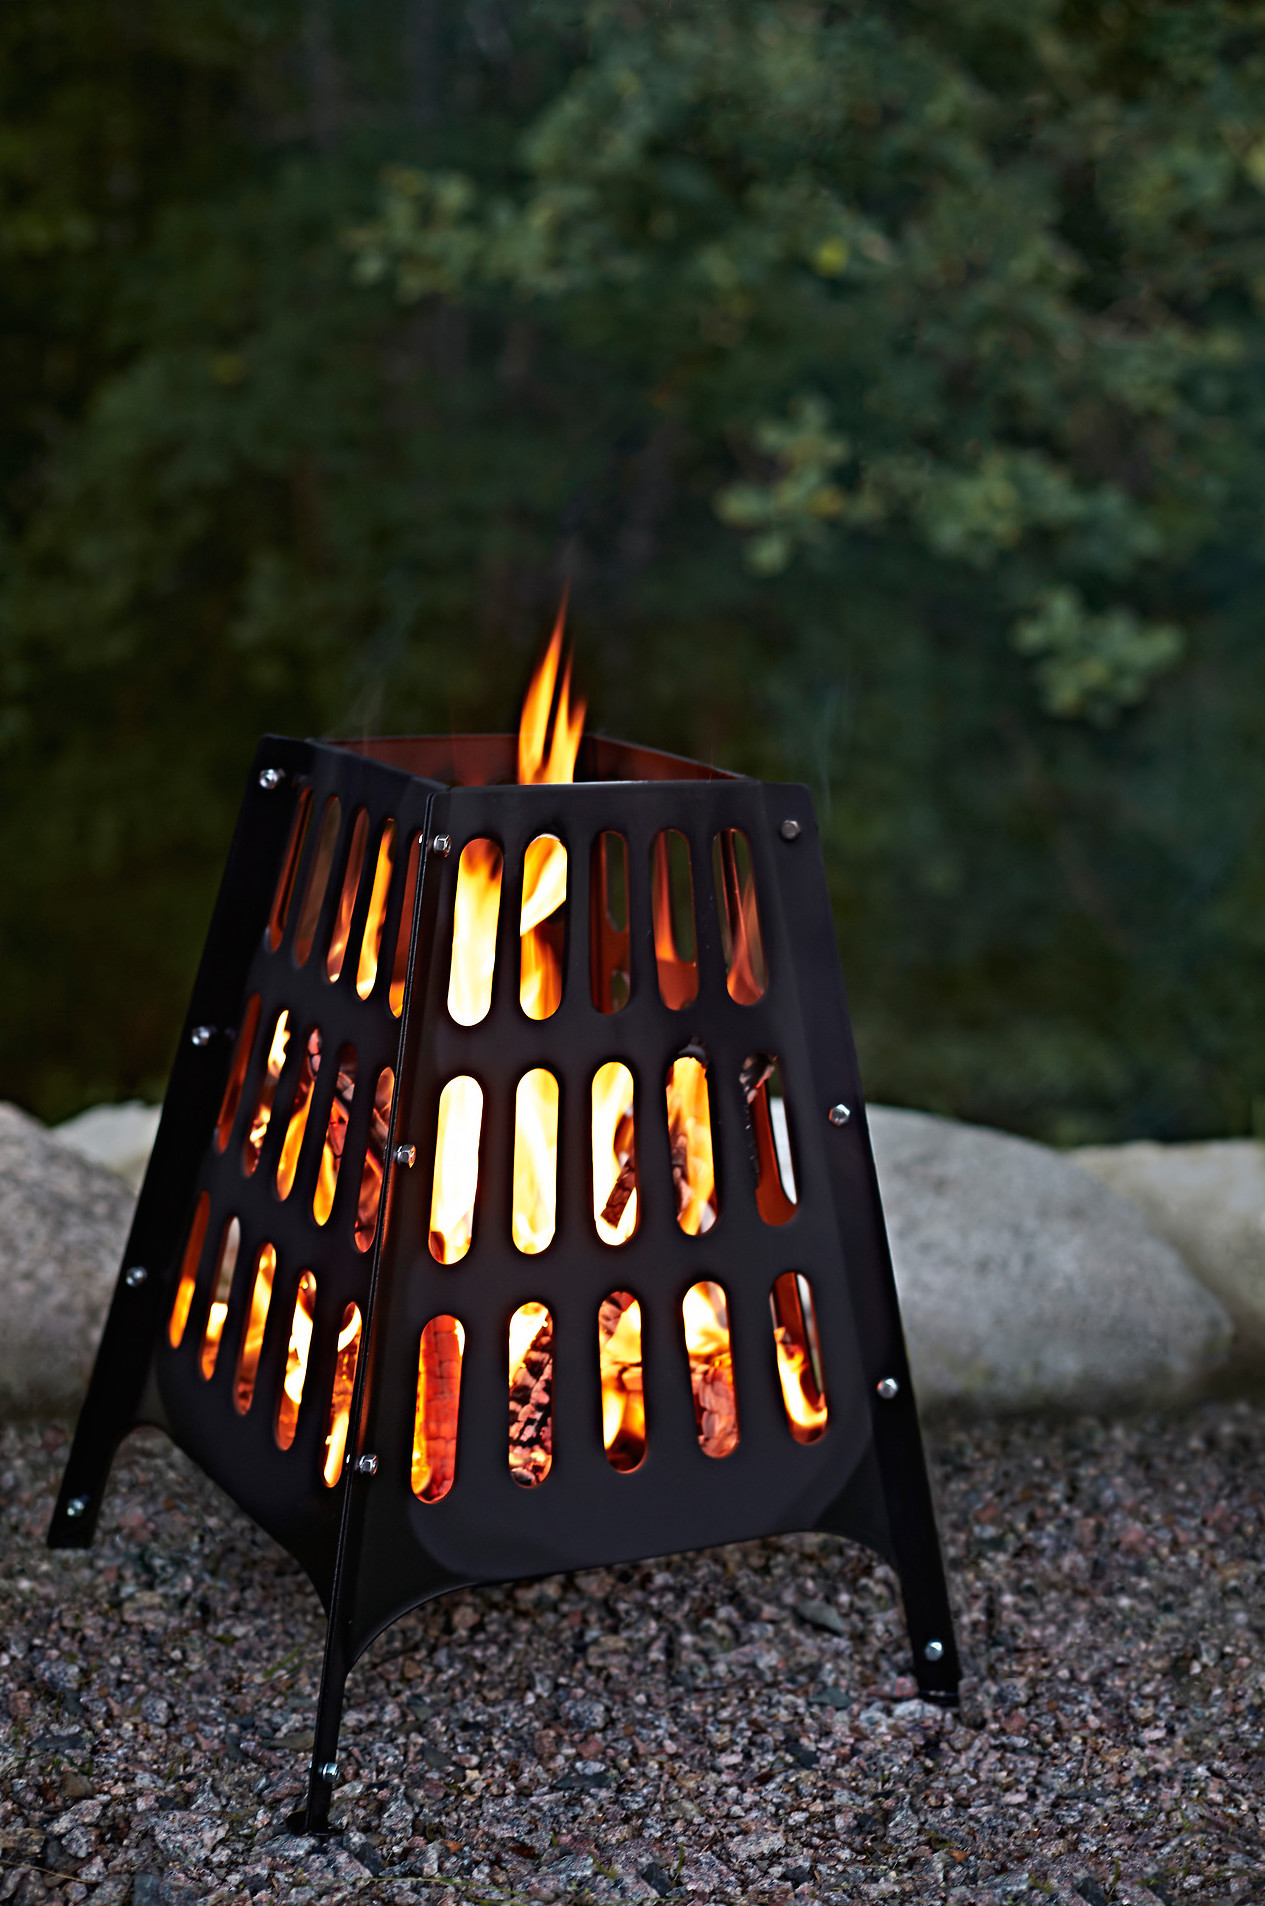 For the hands-on Dad why not get him this on-trend fire basket, so he can escape to the garden and light fires till his heart's content?! -